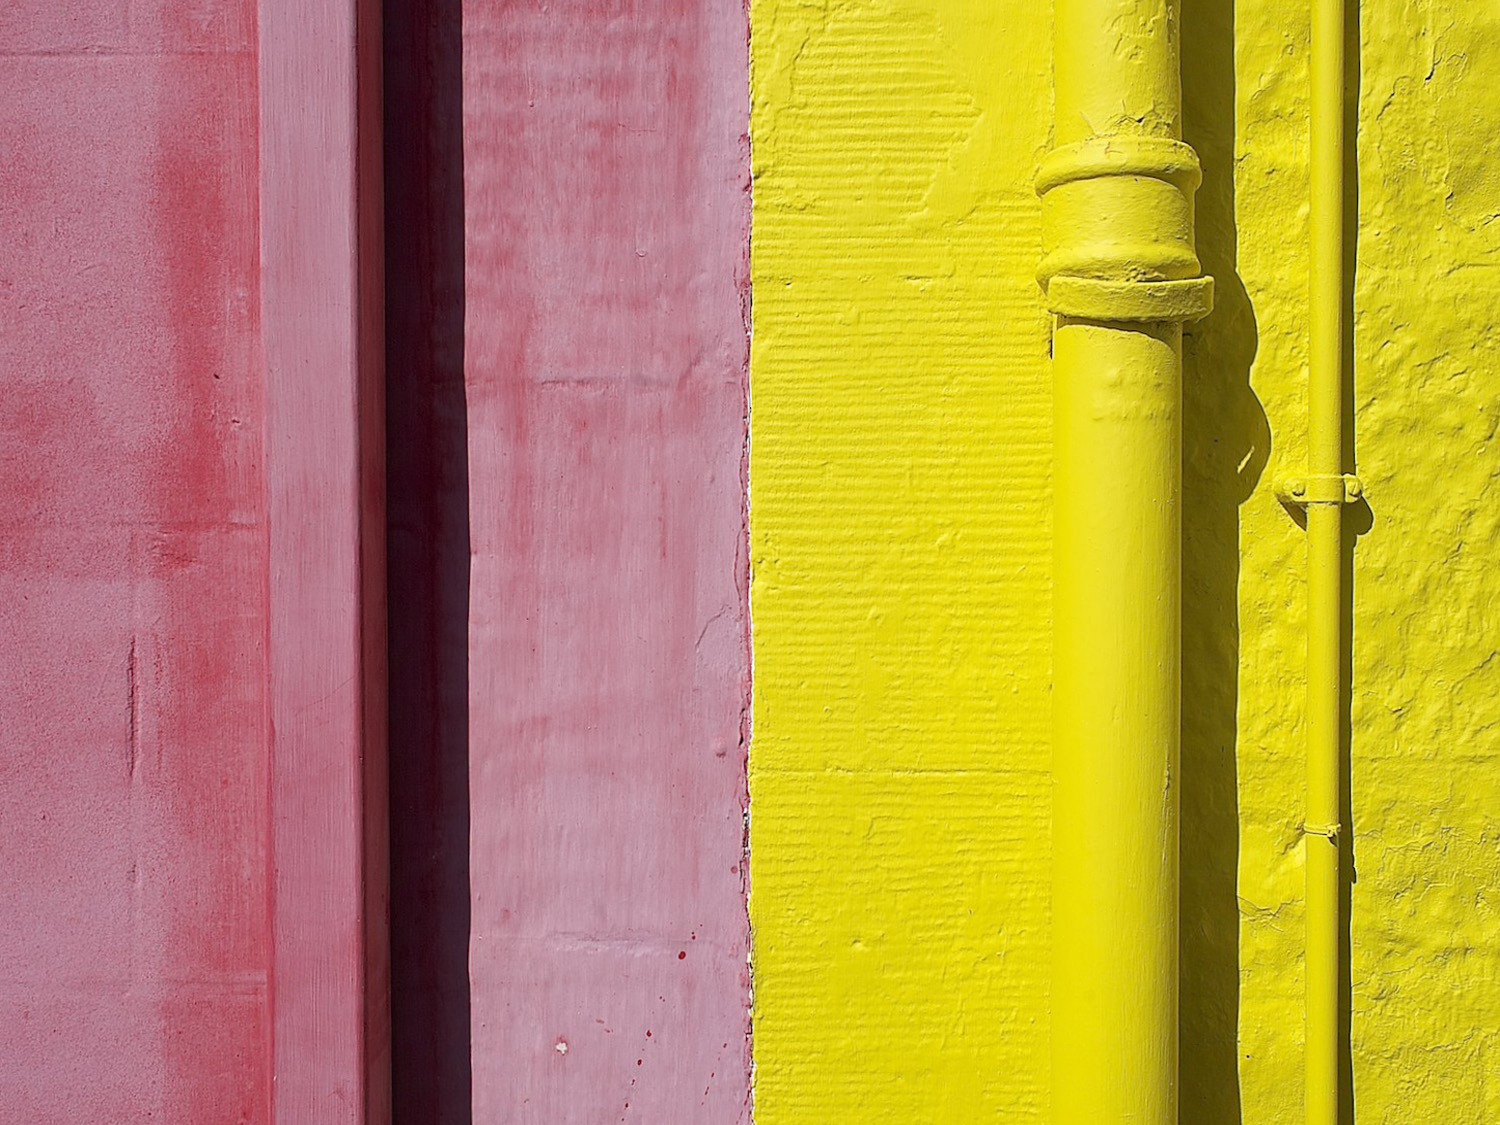 Christopher-Swan-Mull-Tobermory-Colours-abstract 42014-04-18 copy.jpg